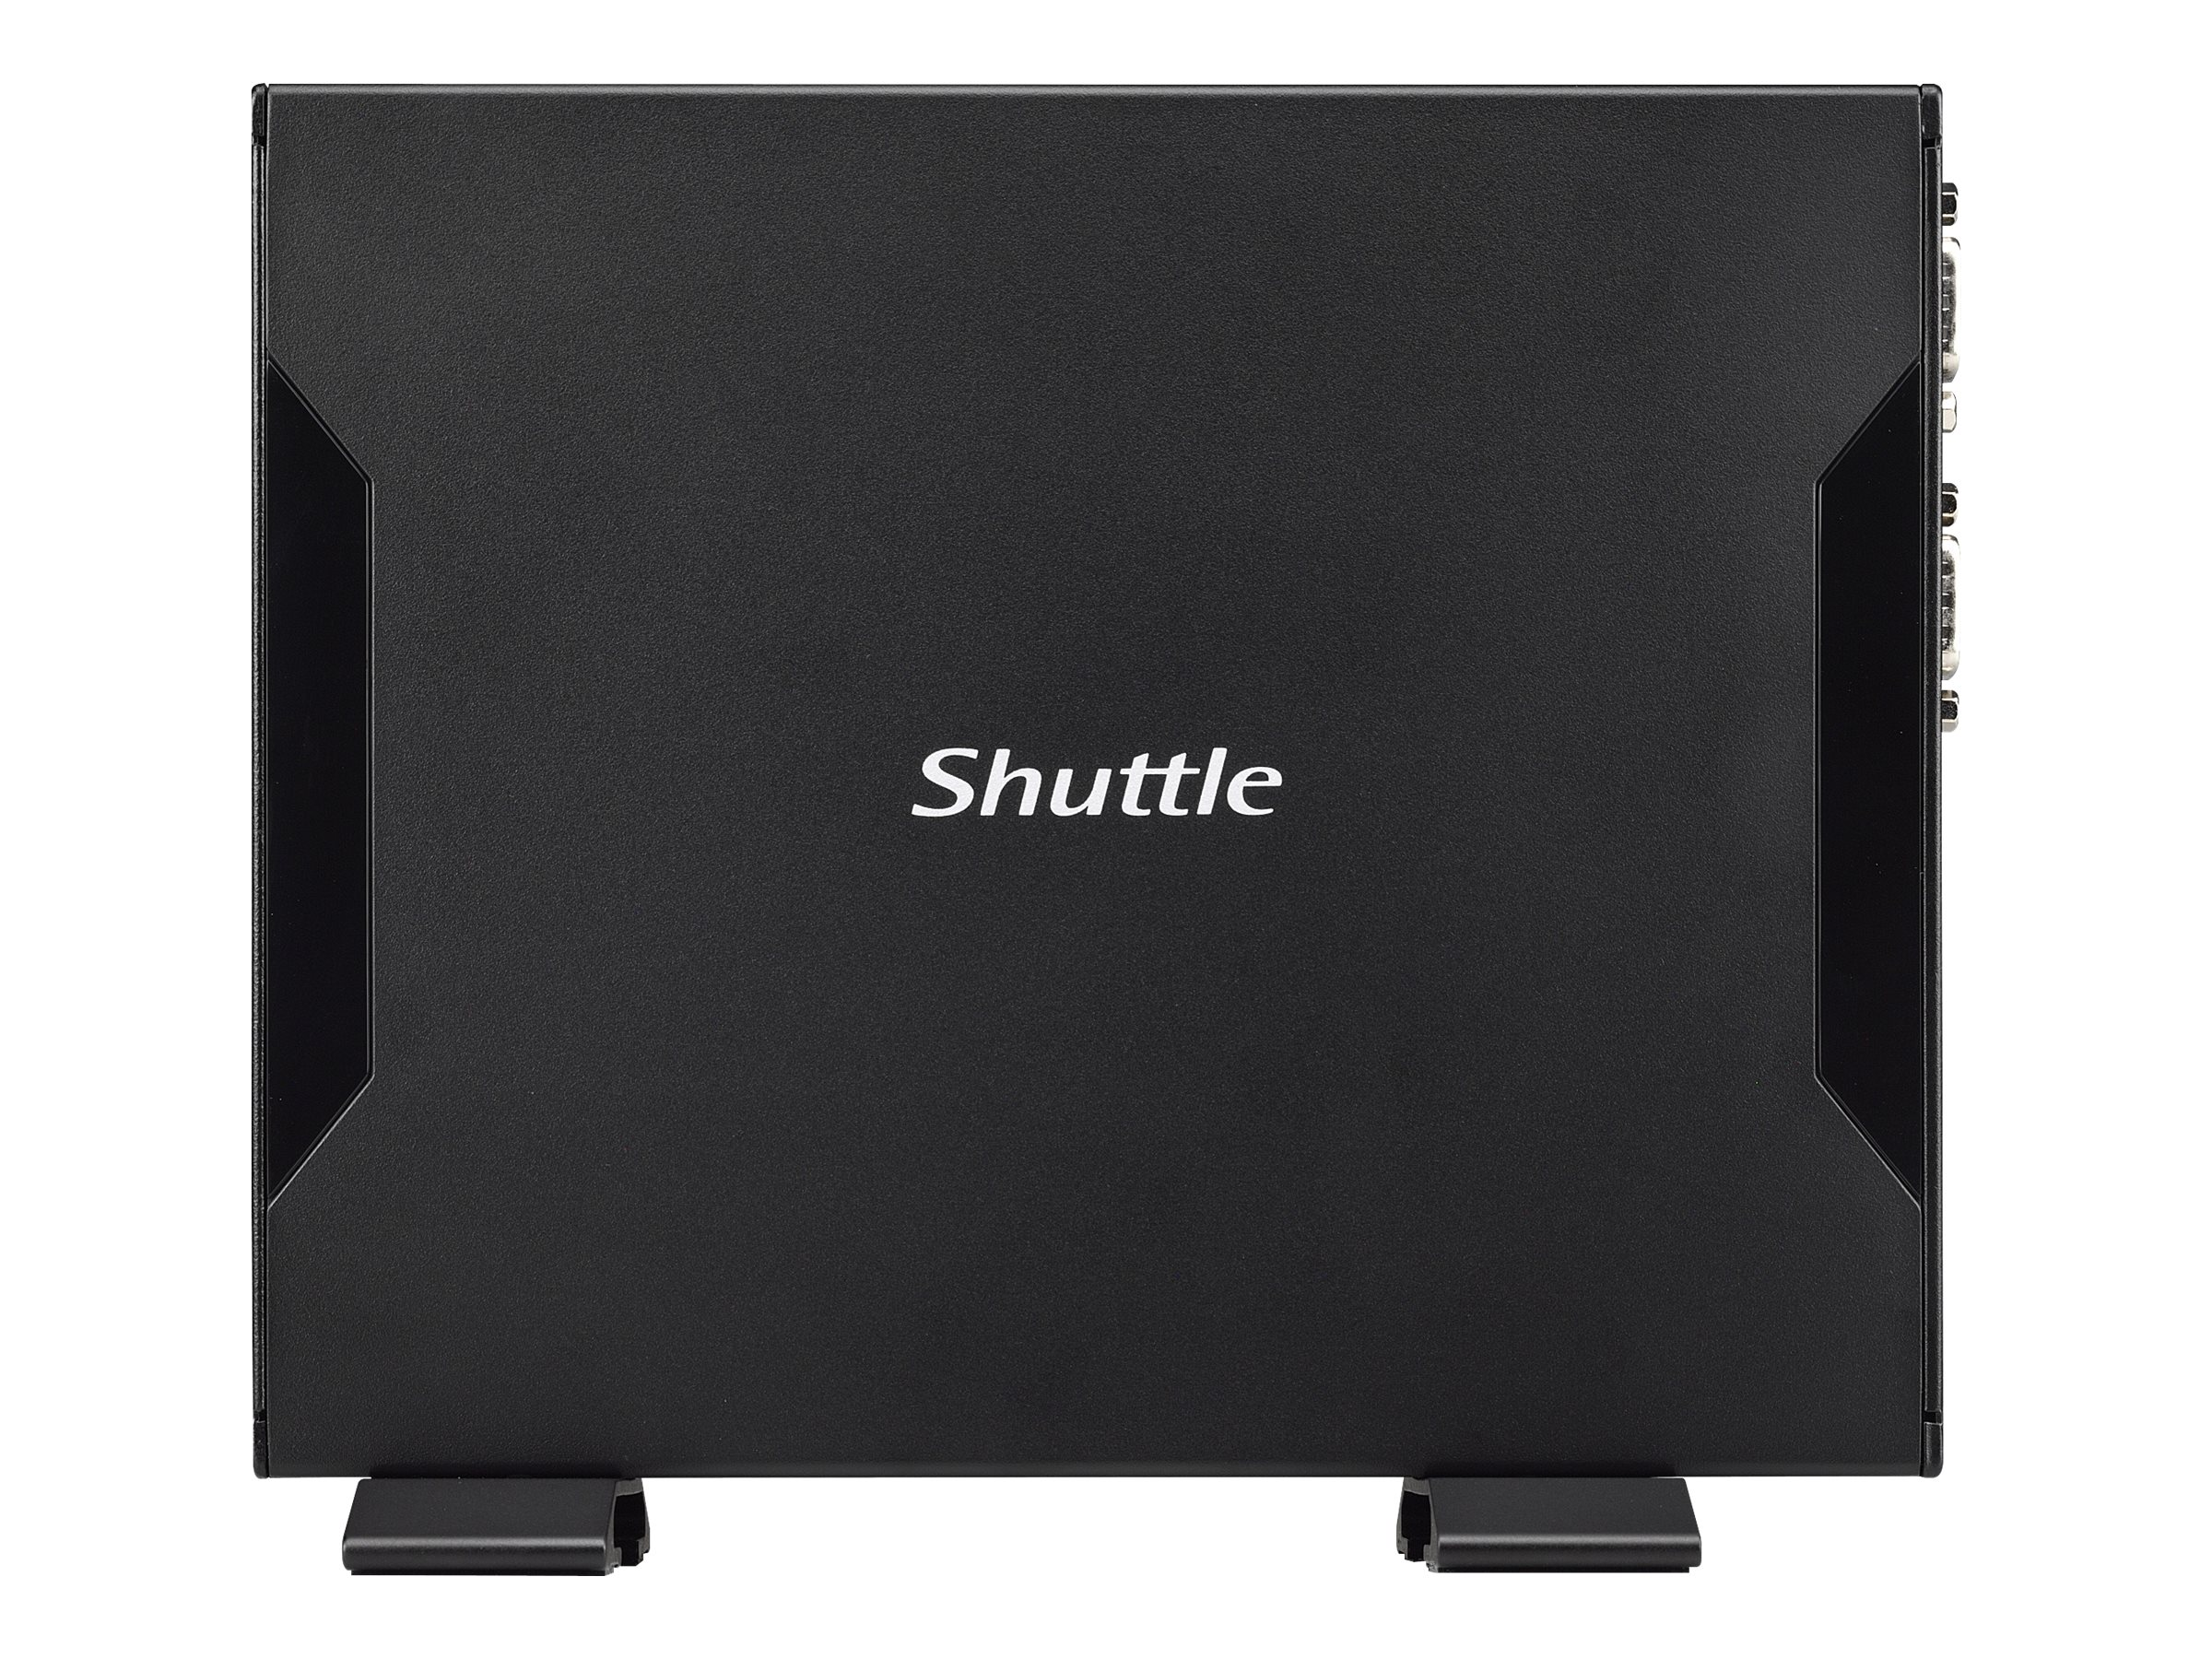 Shuttle Computer Group DS57U5 Image 5